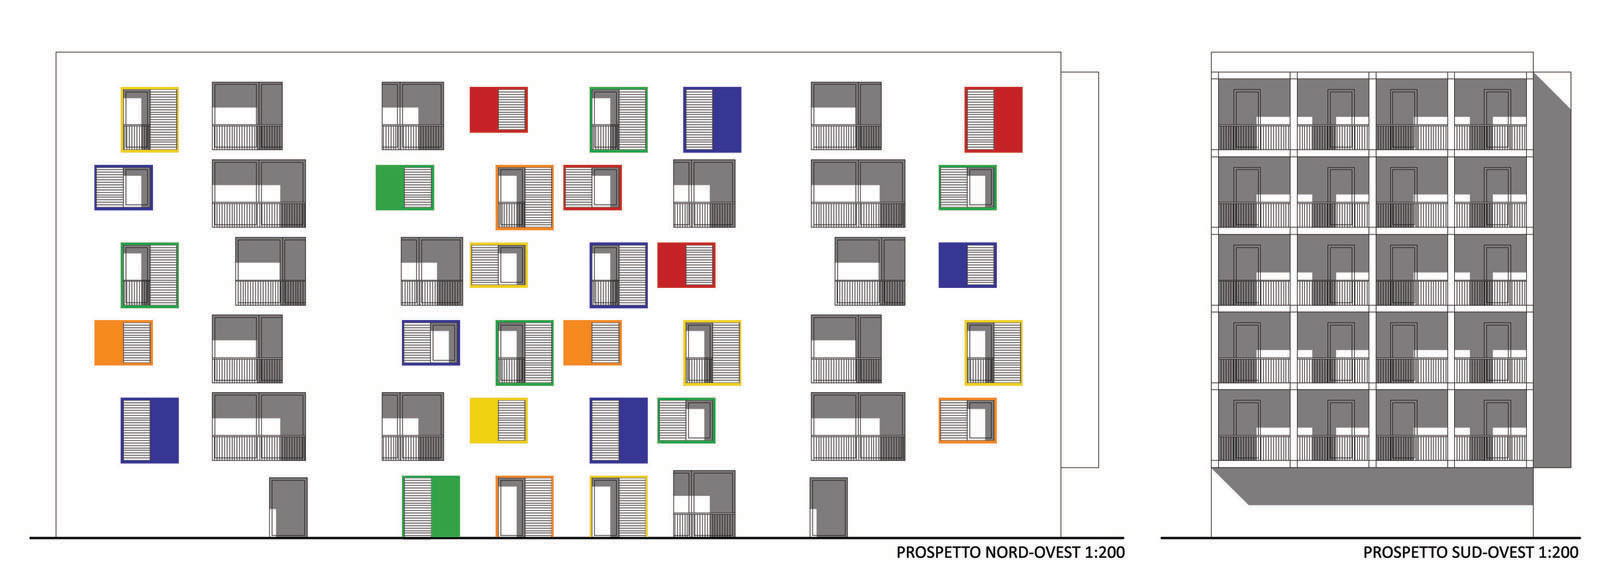 galileo ferraris sud social housing complex map architetti